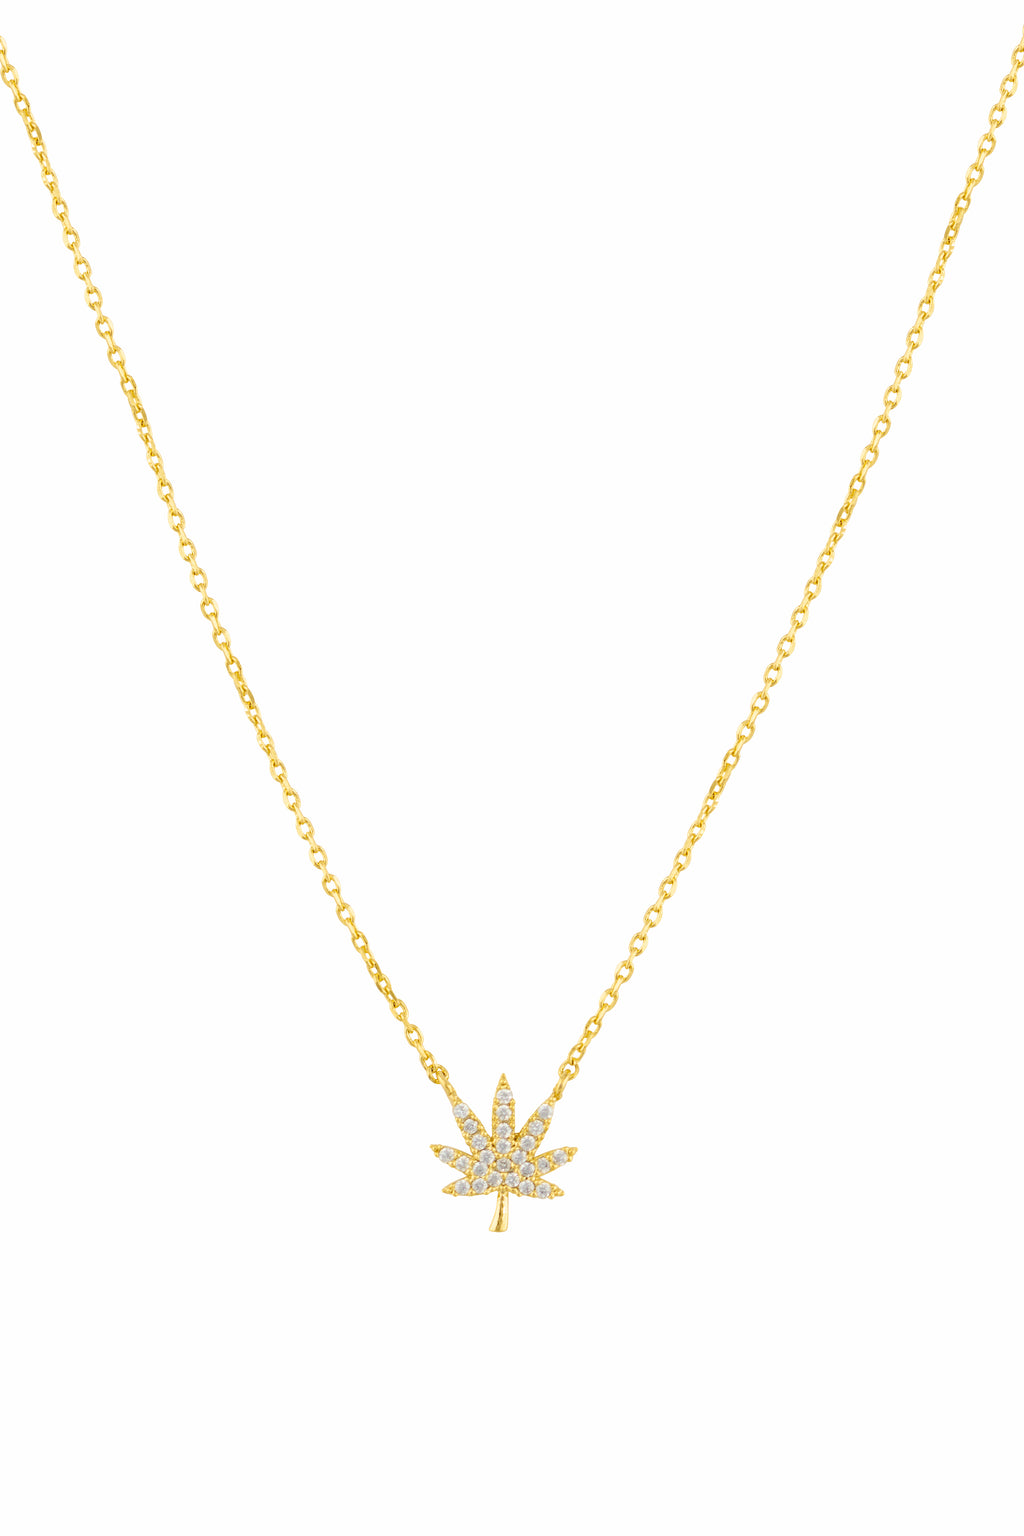 Gold Cannabis Dainty Necklace - Sugar Rose